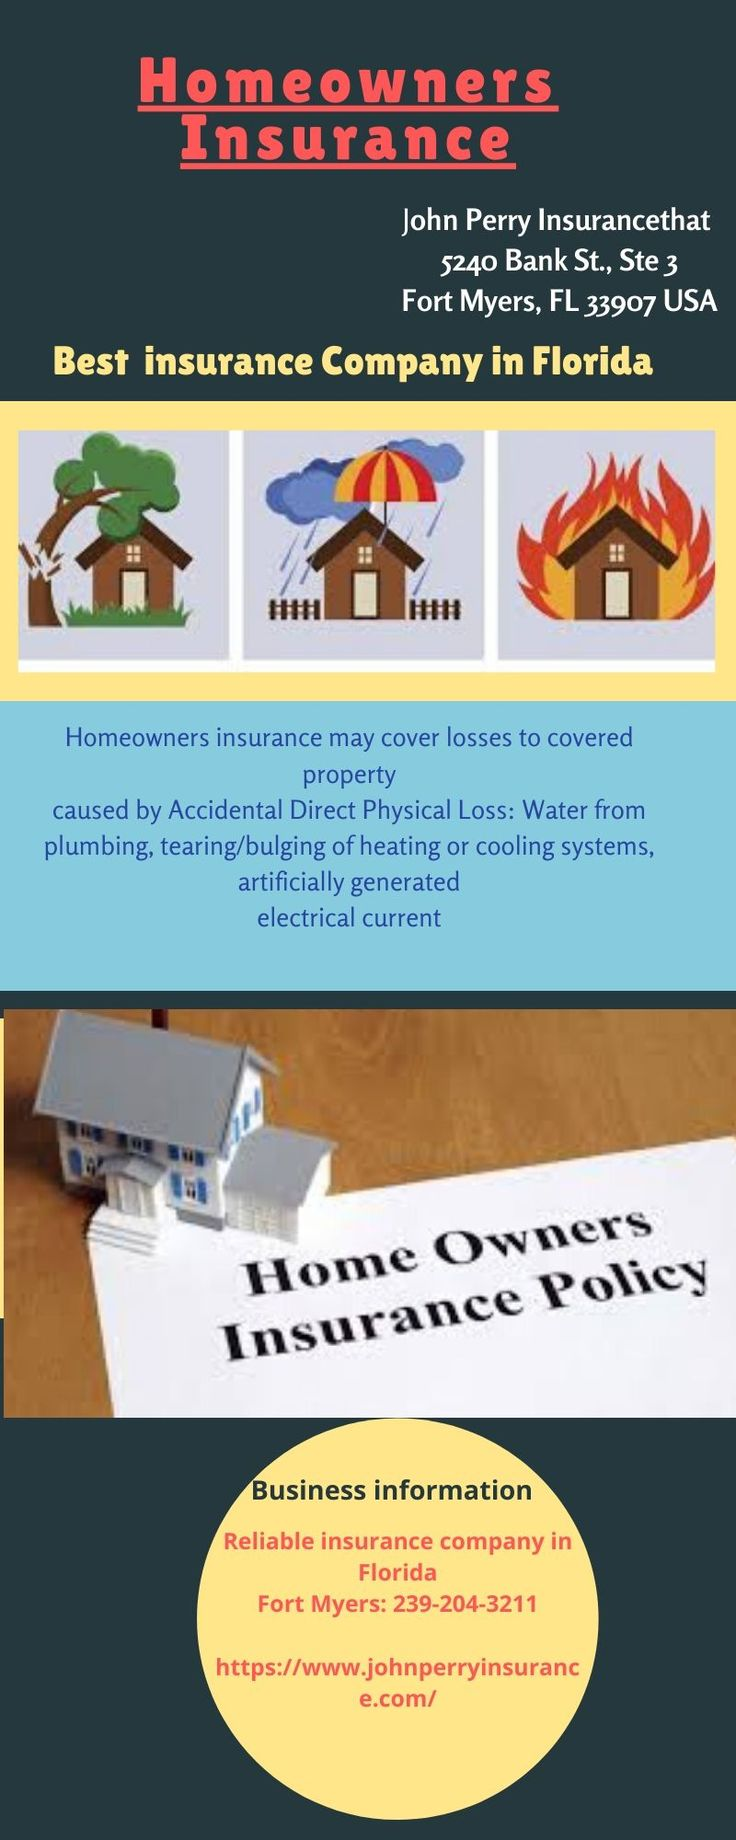 House Insurance Agency Fort Myers, FL in 2020 Homeowners